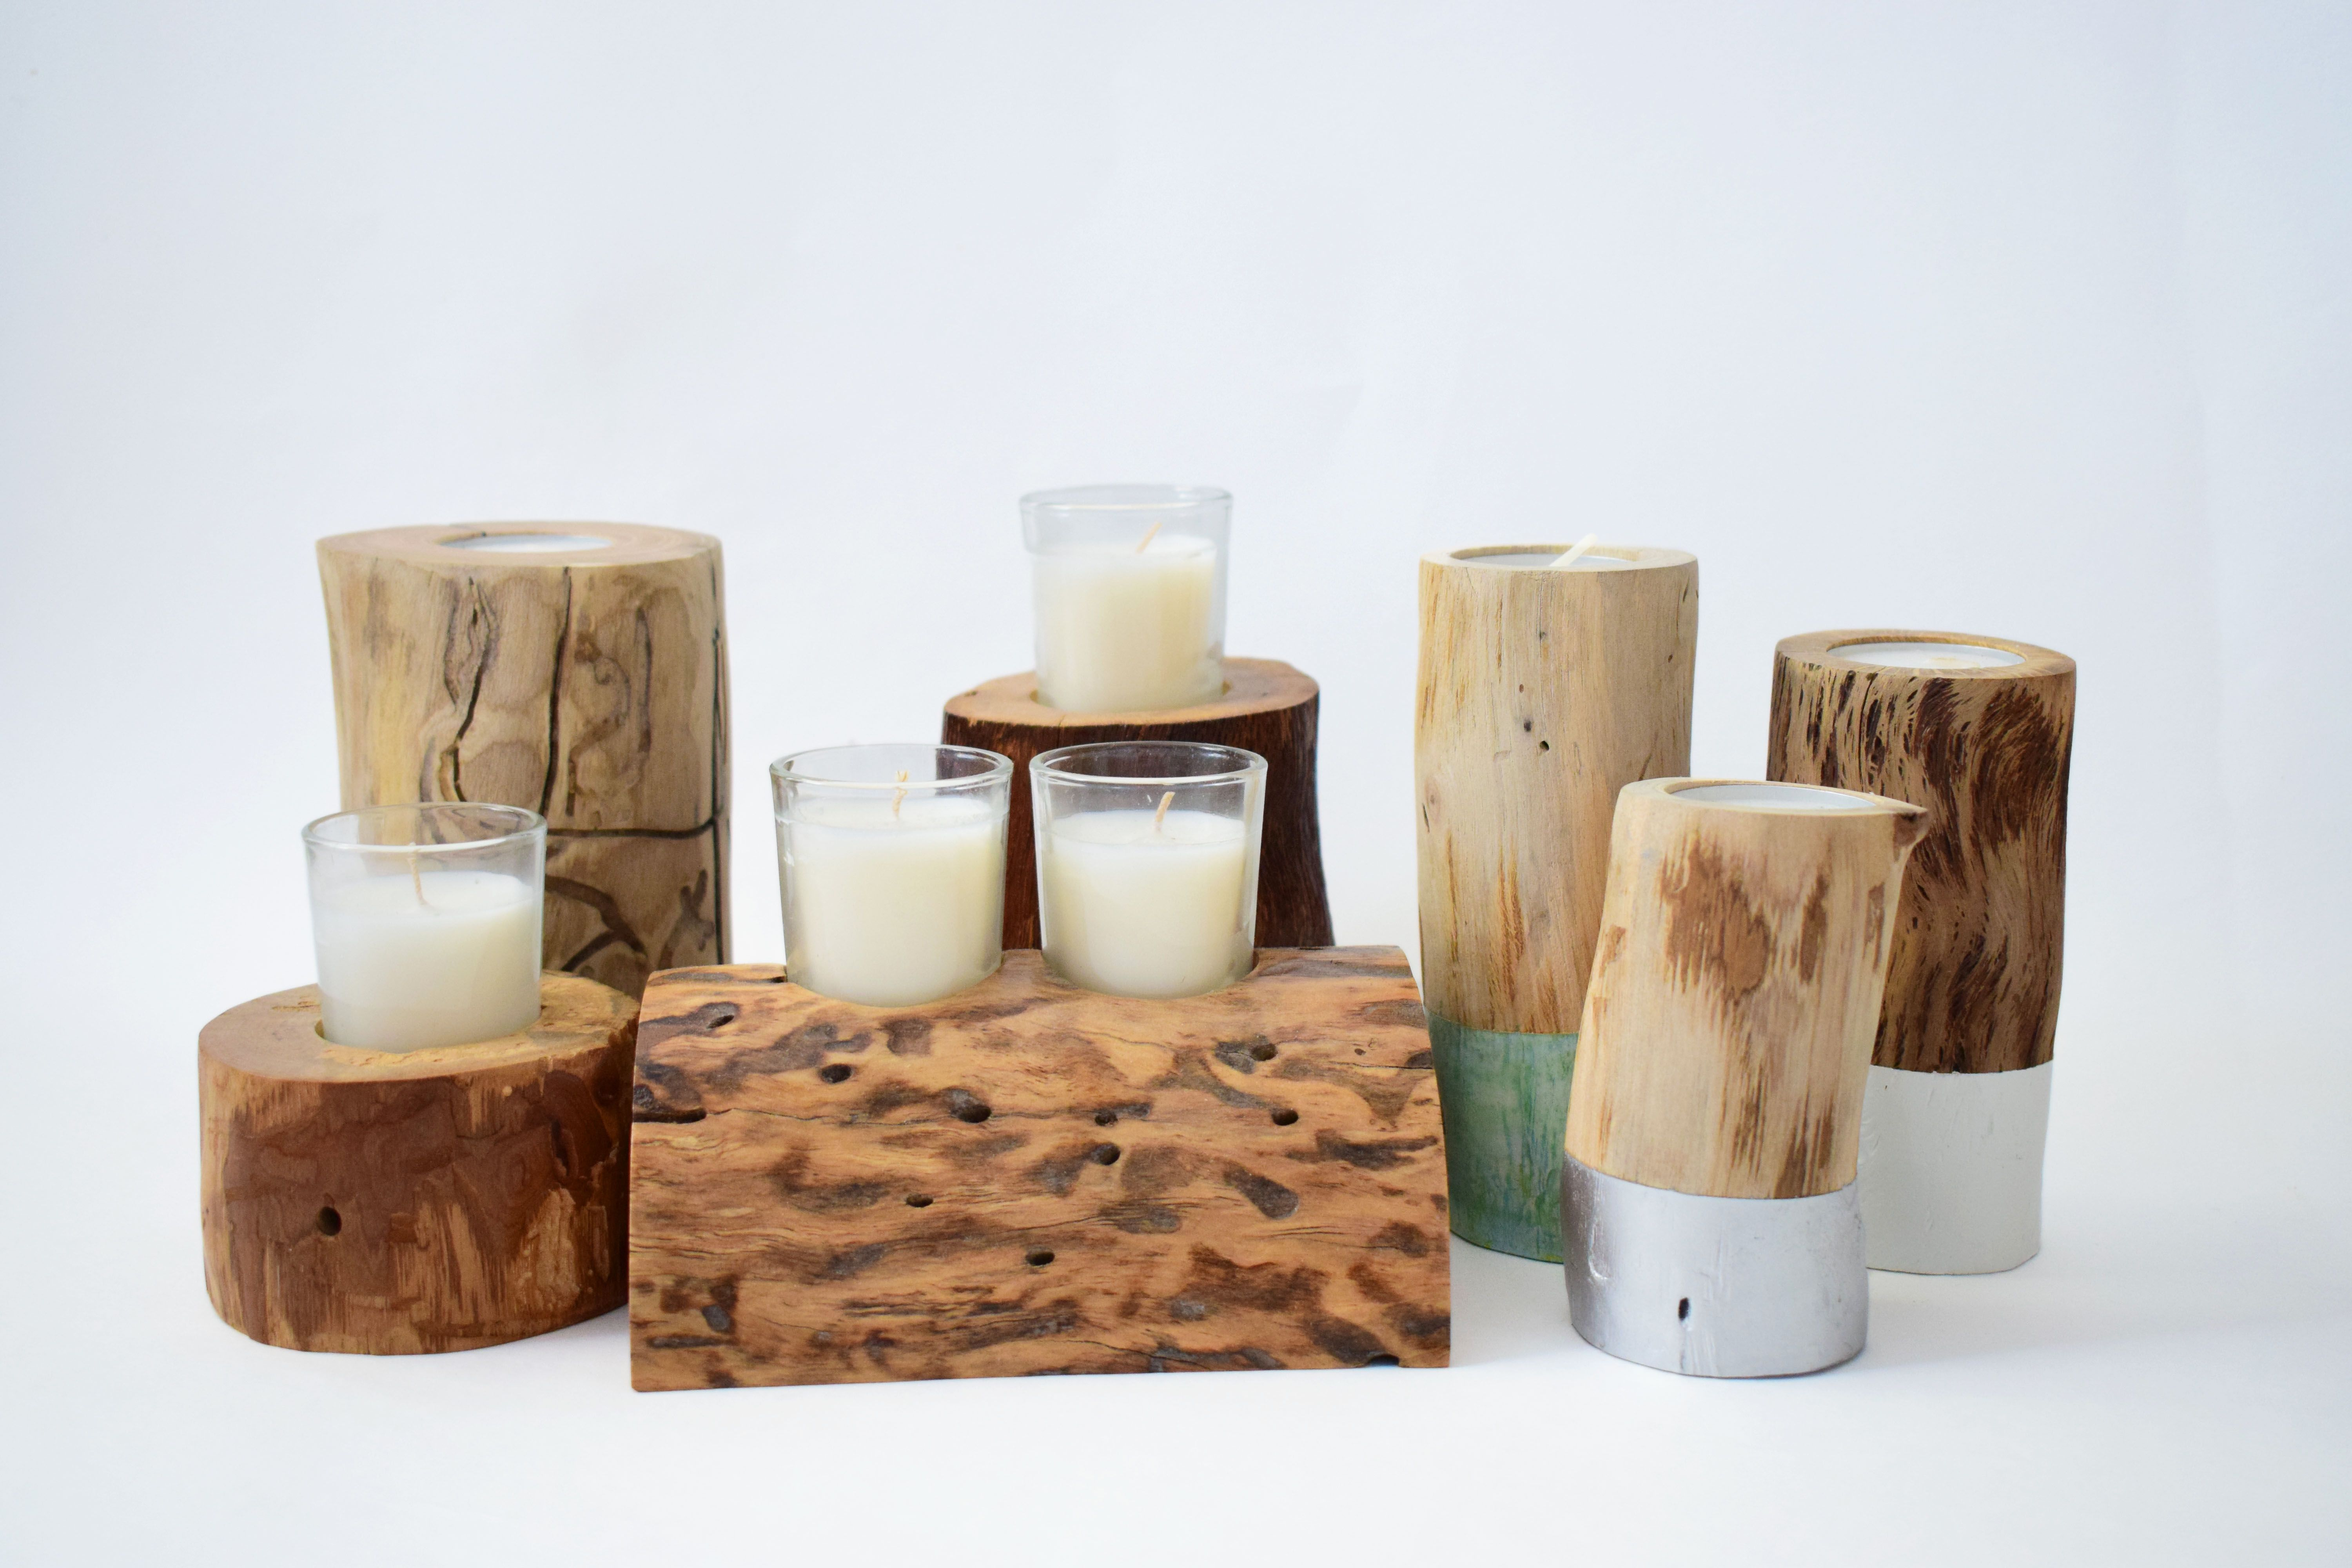 Handmade Wooden Candle Holders Using Recycled Wood   Dip Dyed   Rustic And Sustainable  Home Decor